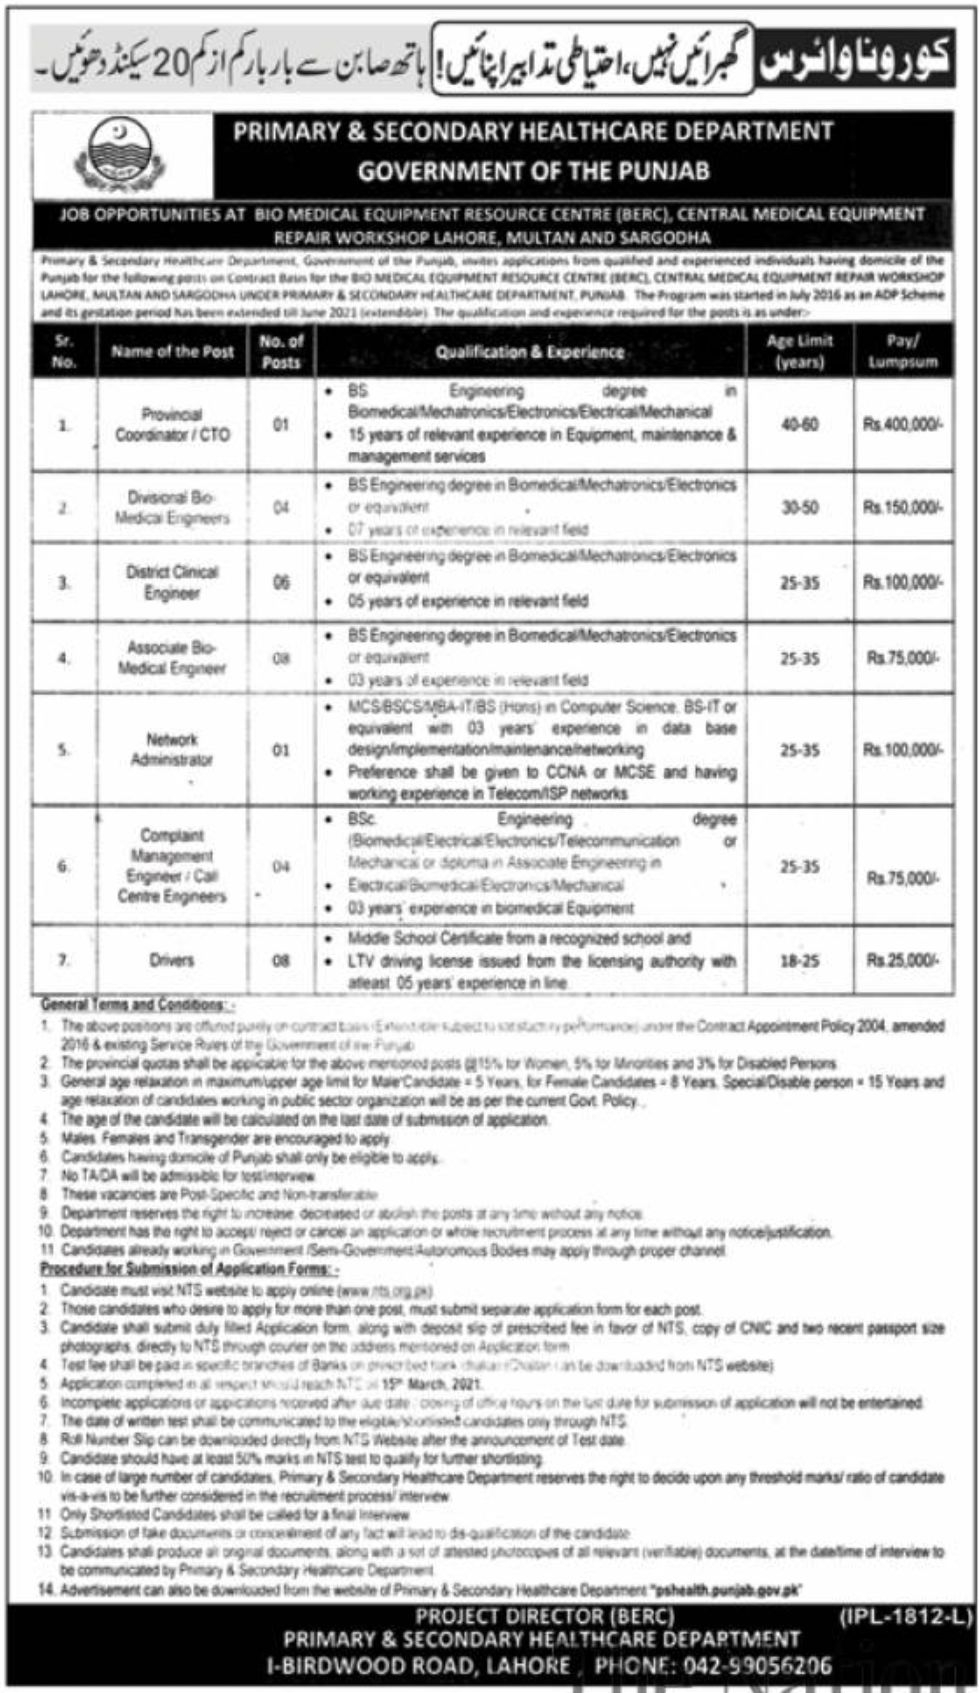 Primary & Secondary Healthcare Department Government of the Punjab Jobs February 2021